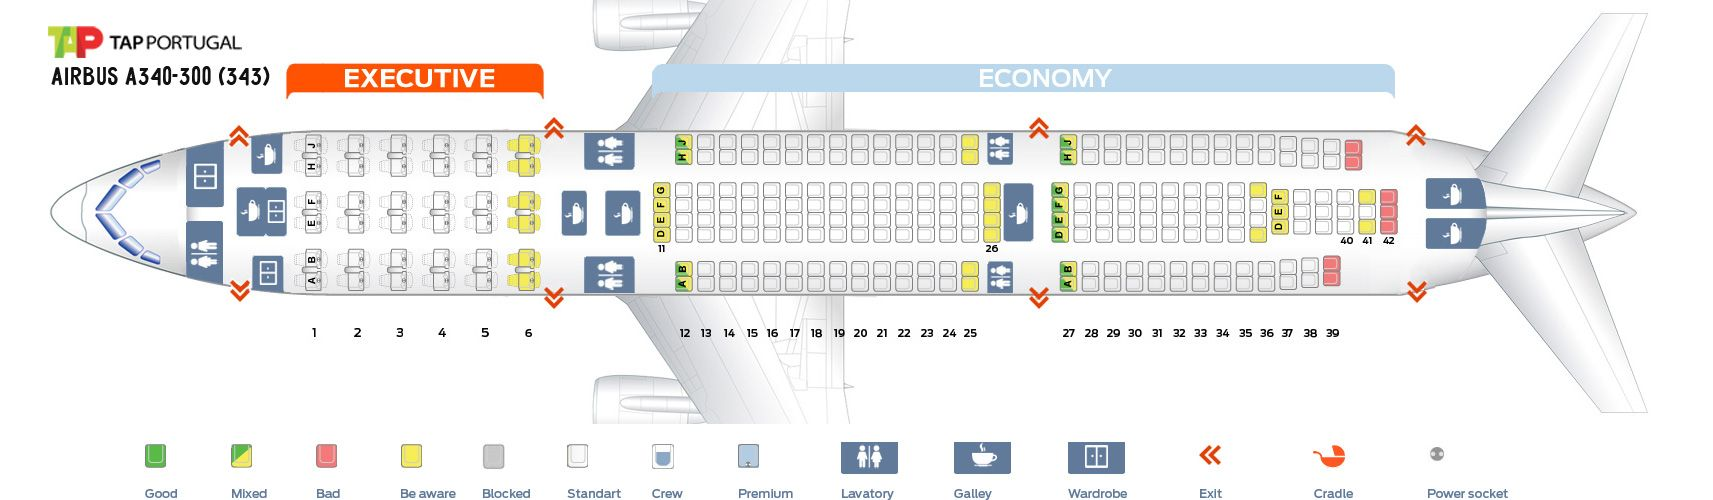 Tap Air Portugal Fleet Airbus A340 300 Details And Pictures Interior